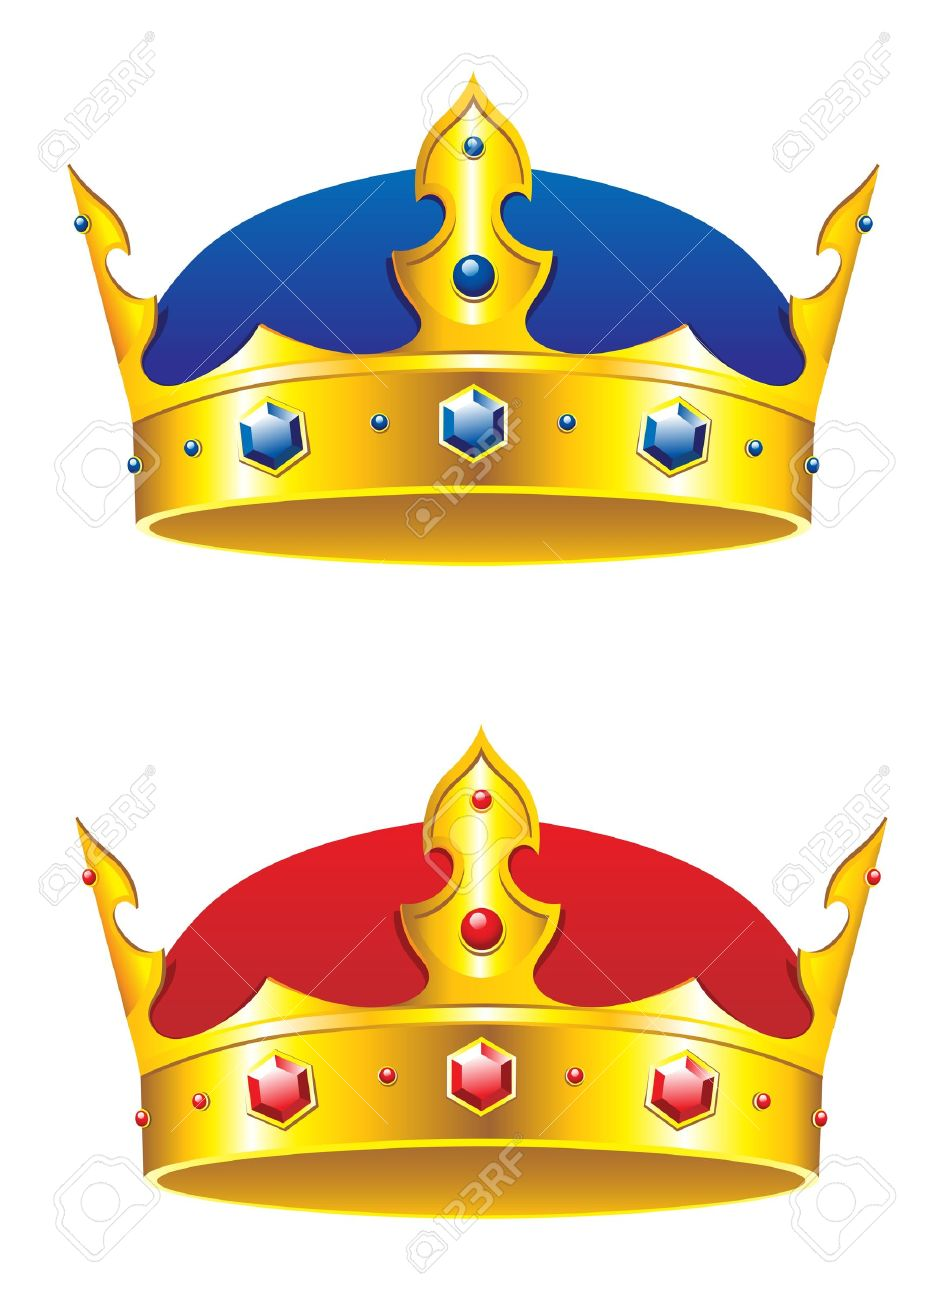 Crown for king clipart banner royalty free download Clipart king crown - ClipartFest banner royalty free download